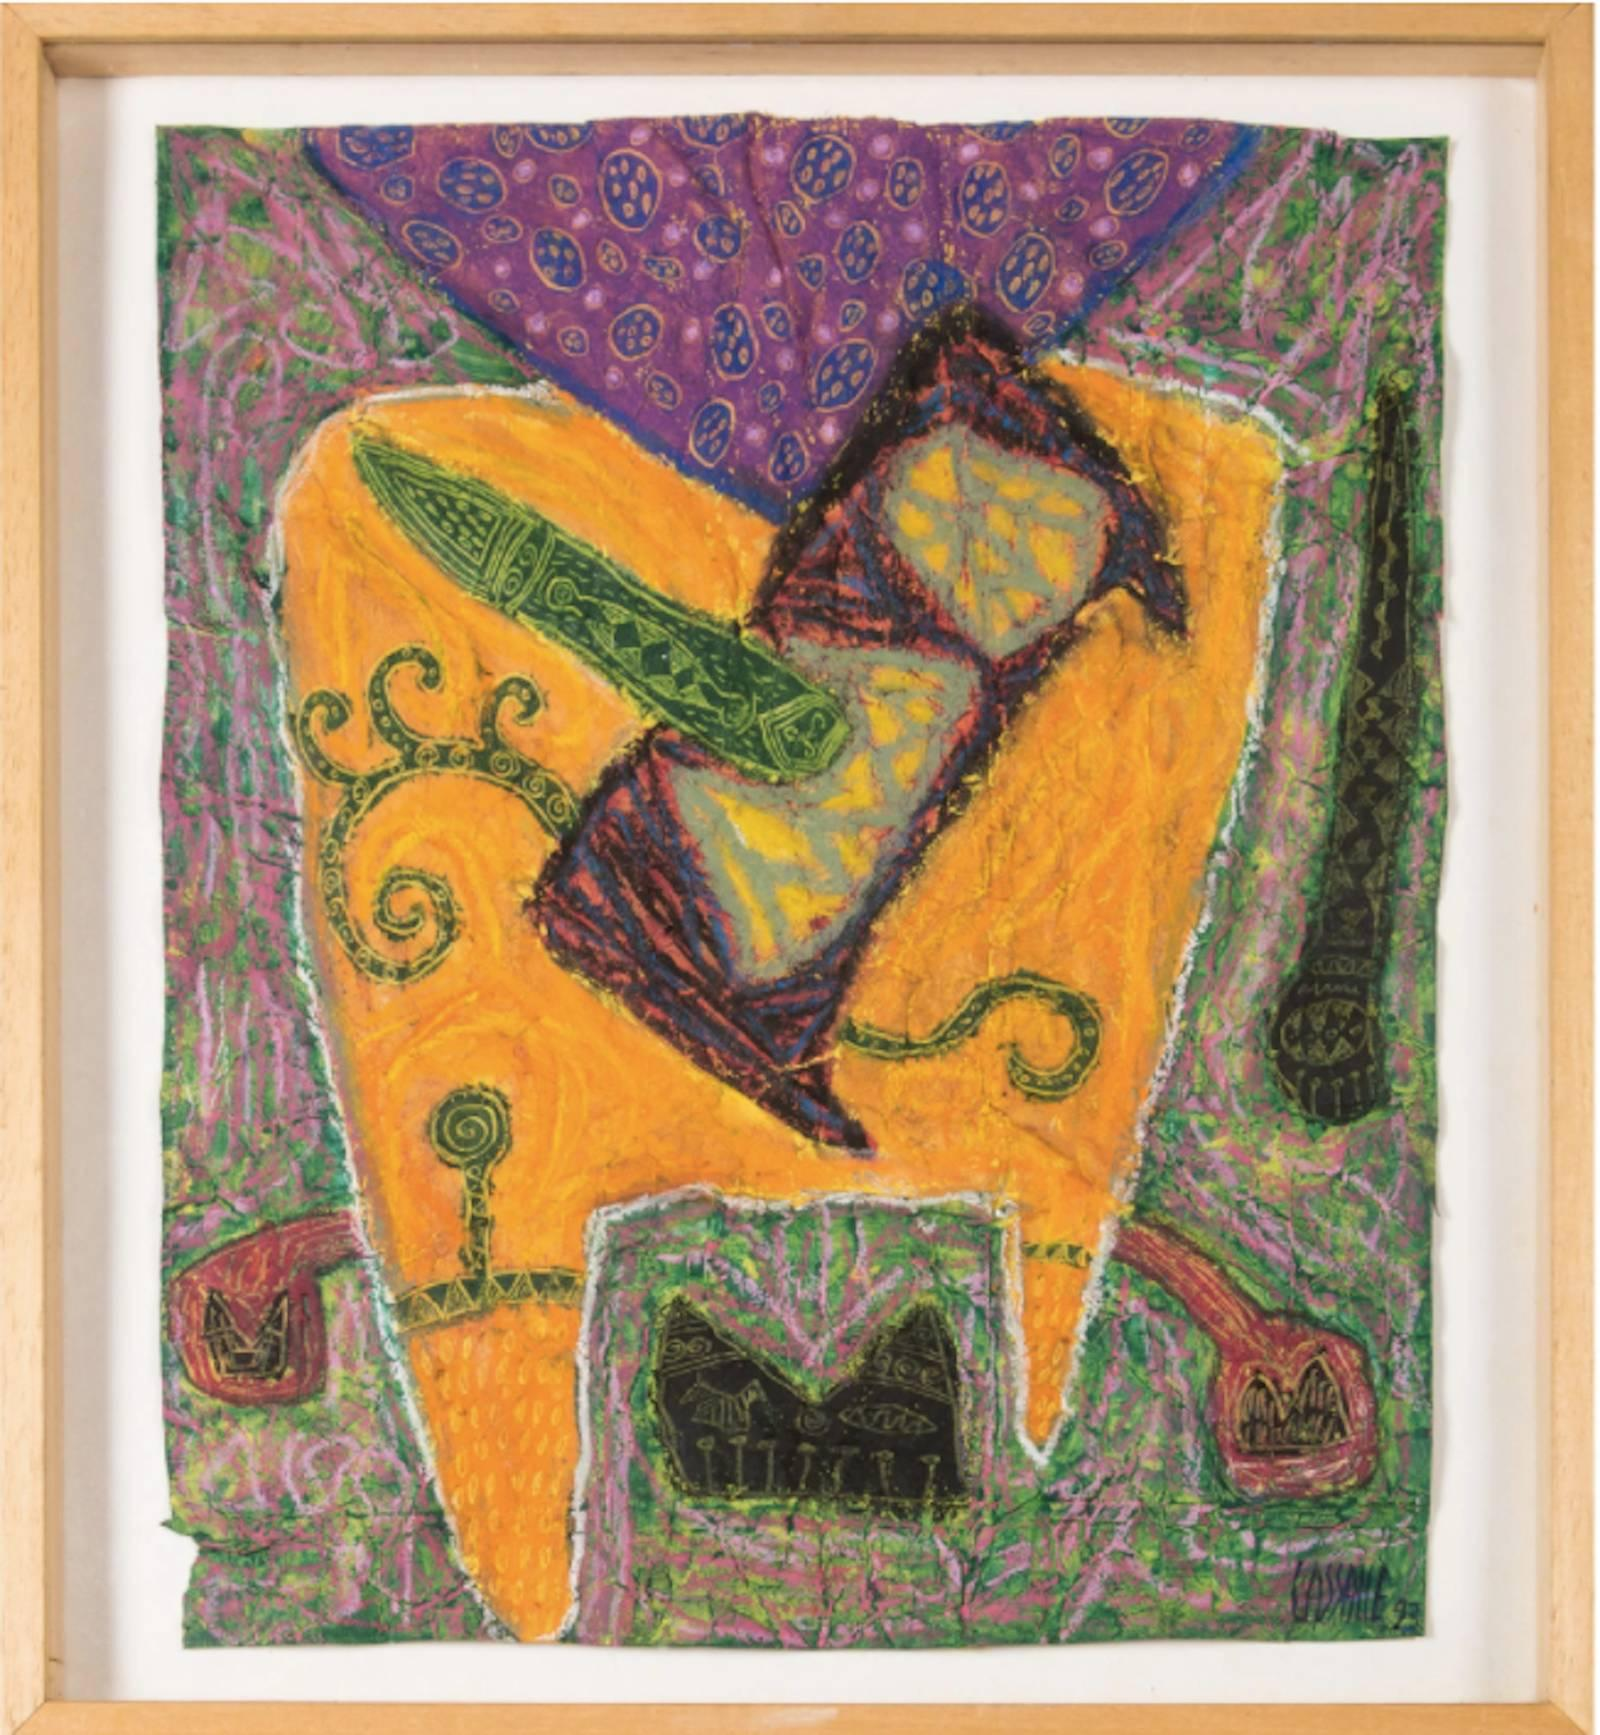 untitled- abstract bright color oil pastel drawing on paper